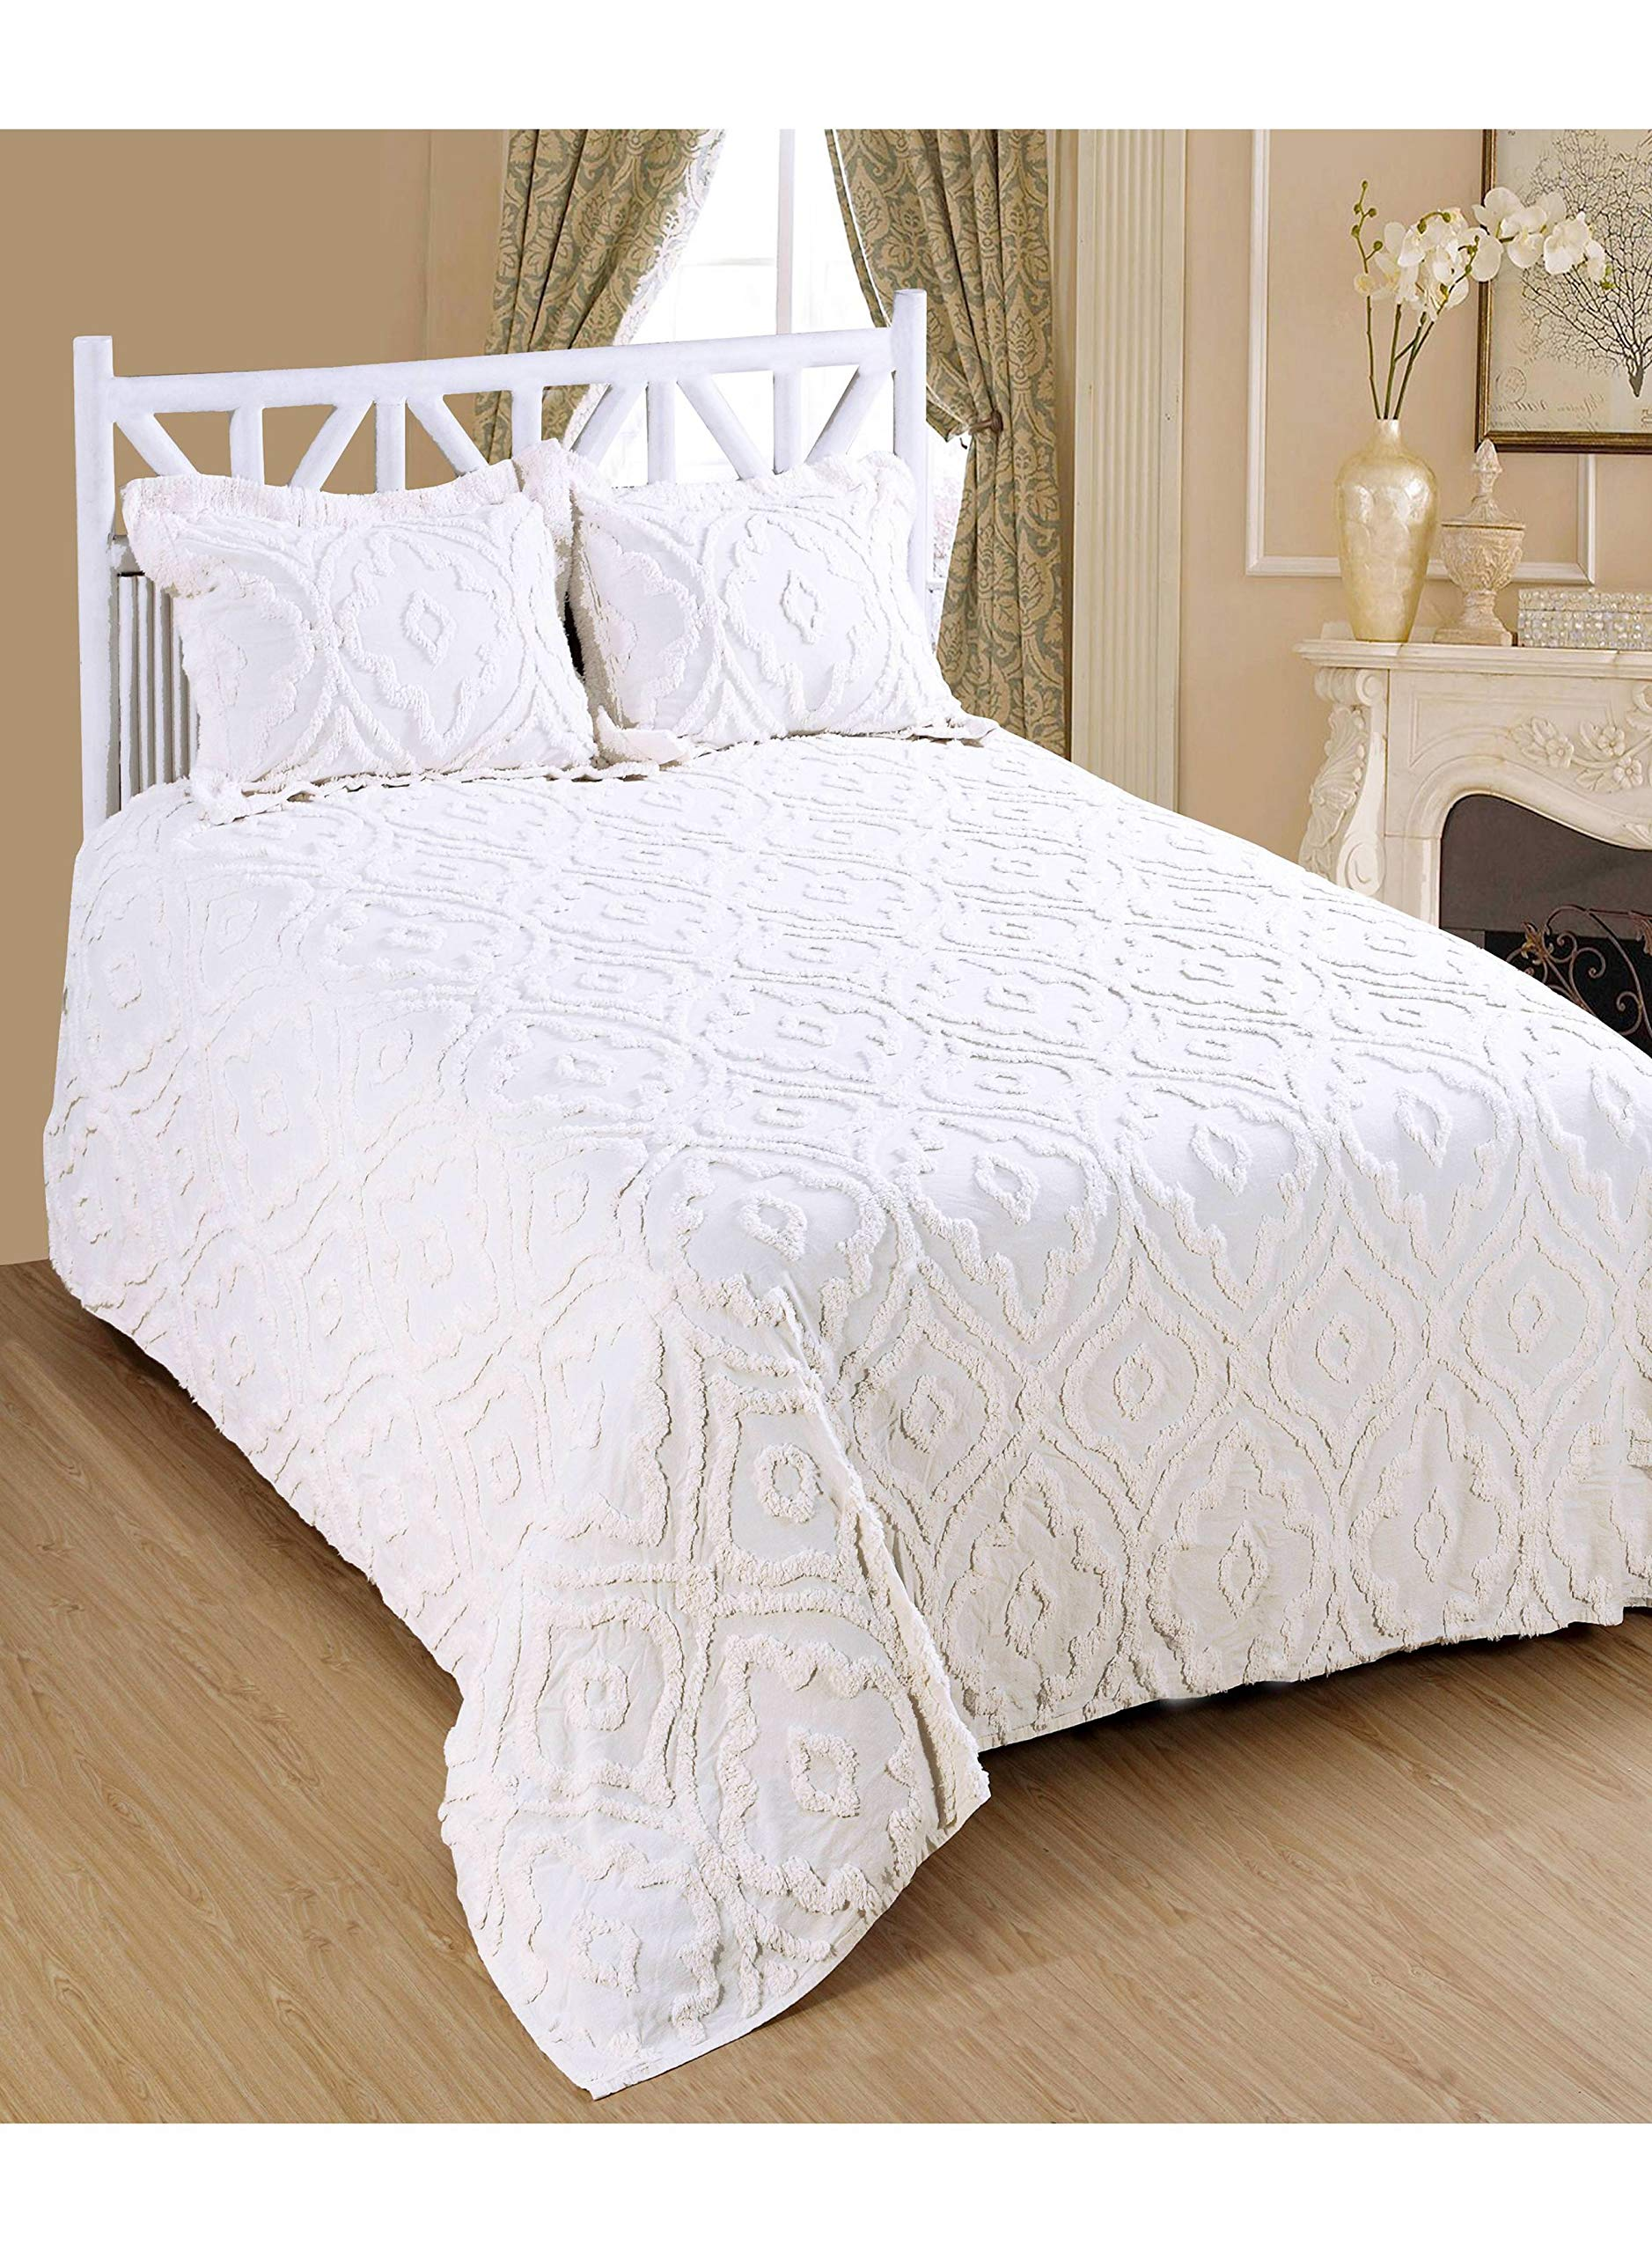 Saral Home Fashions Tangire Design Chenille Bedspread Two Sham, Queen, White (Bedspread-118x102 inches, Sham-26x20+2 inches)